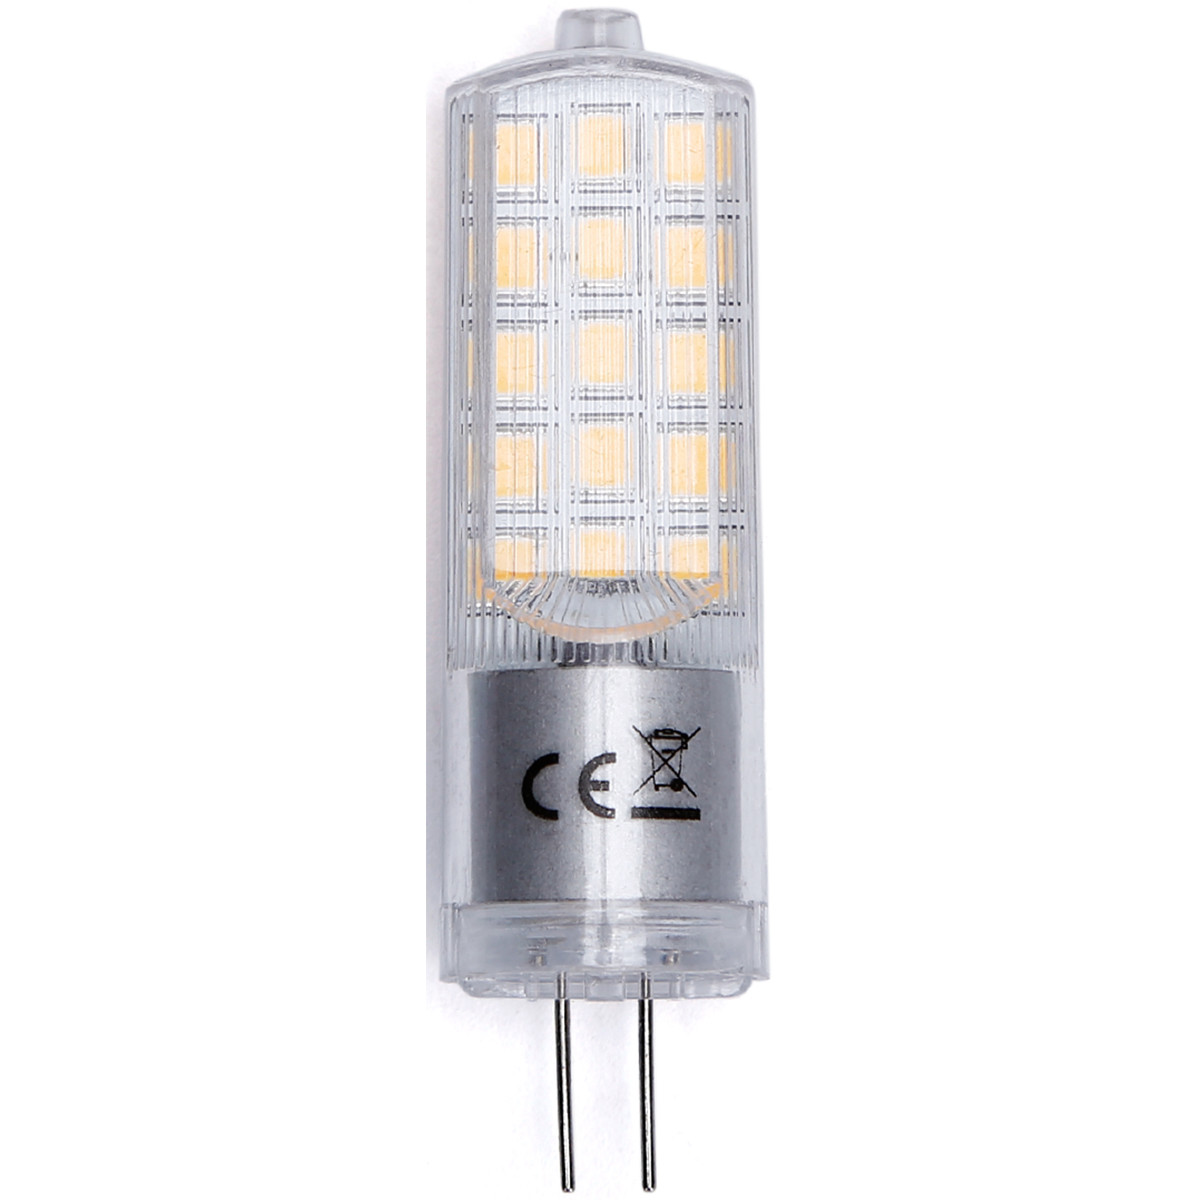 LED Lamp - Aigi - G4 Fitting - 3.6W - Helder/Koud Wit 6500K | Vervangt 35W